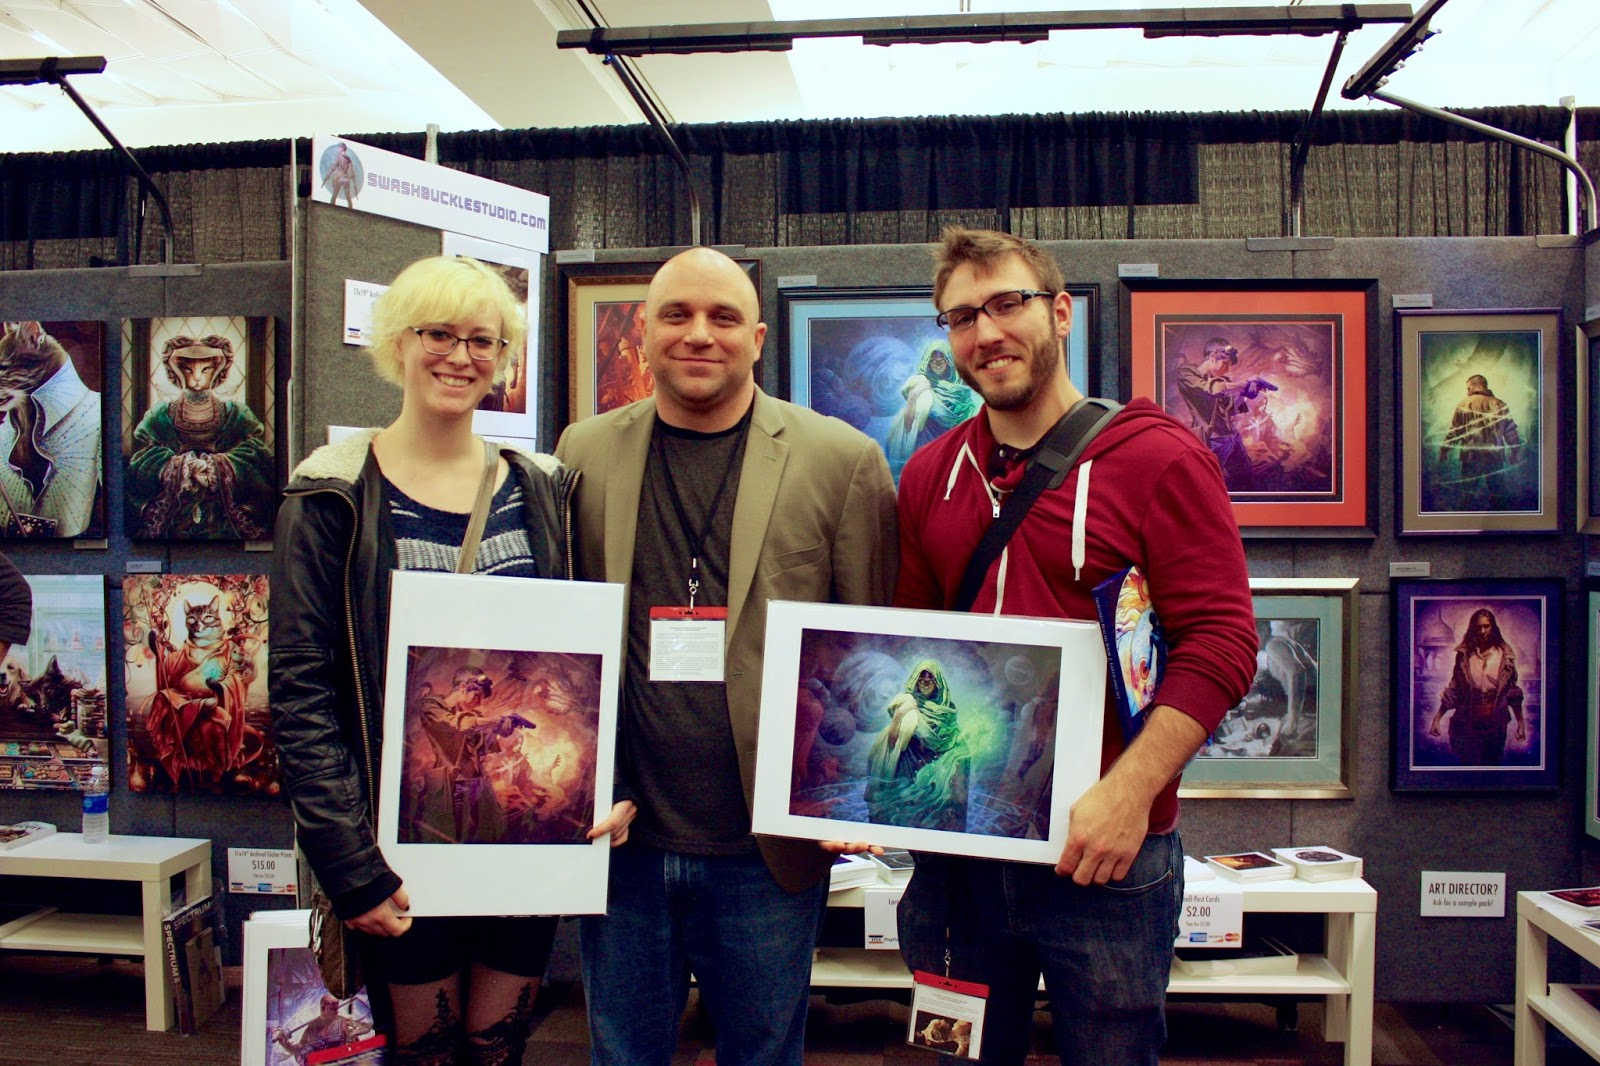 A couple of happy customers.  These guys were so awesome to chat with!